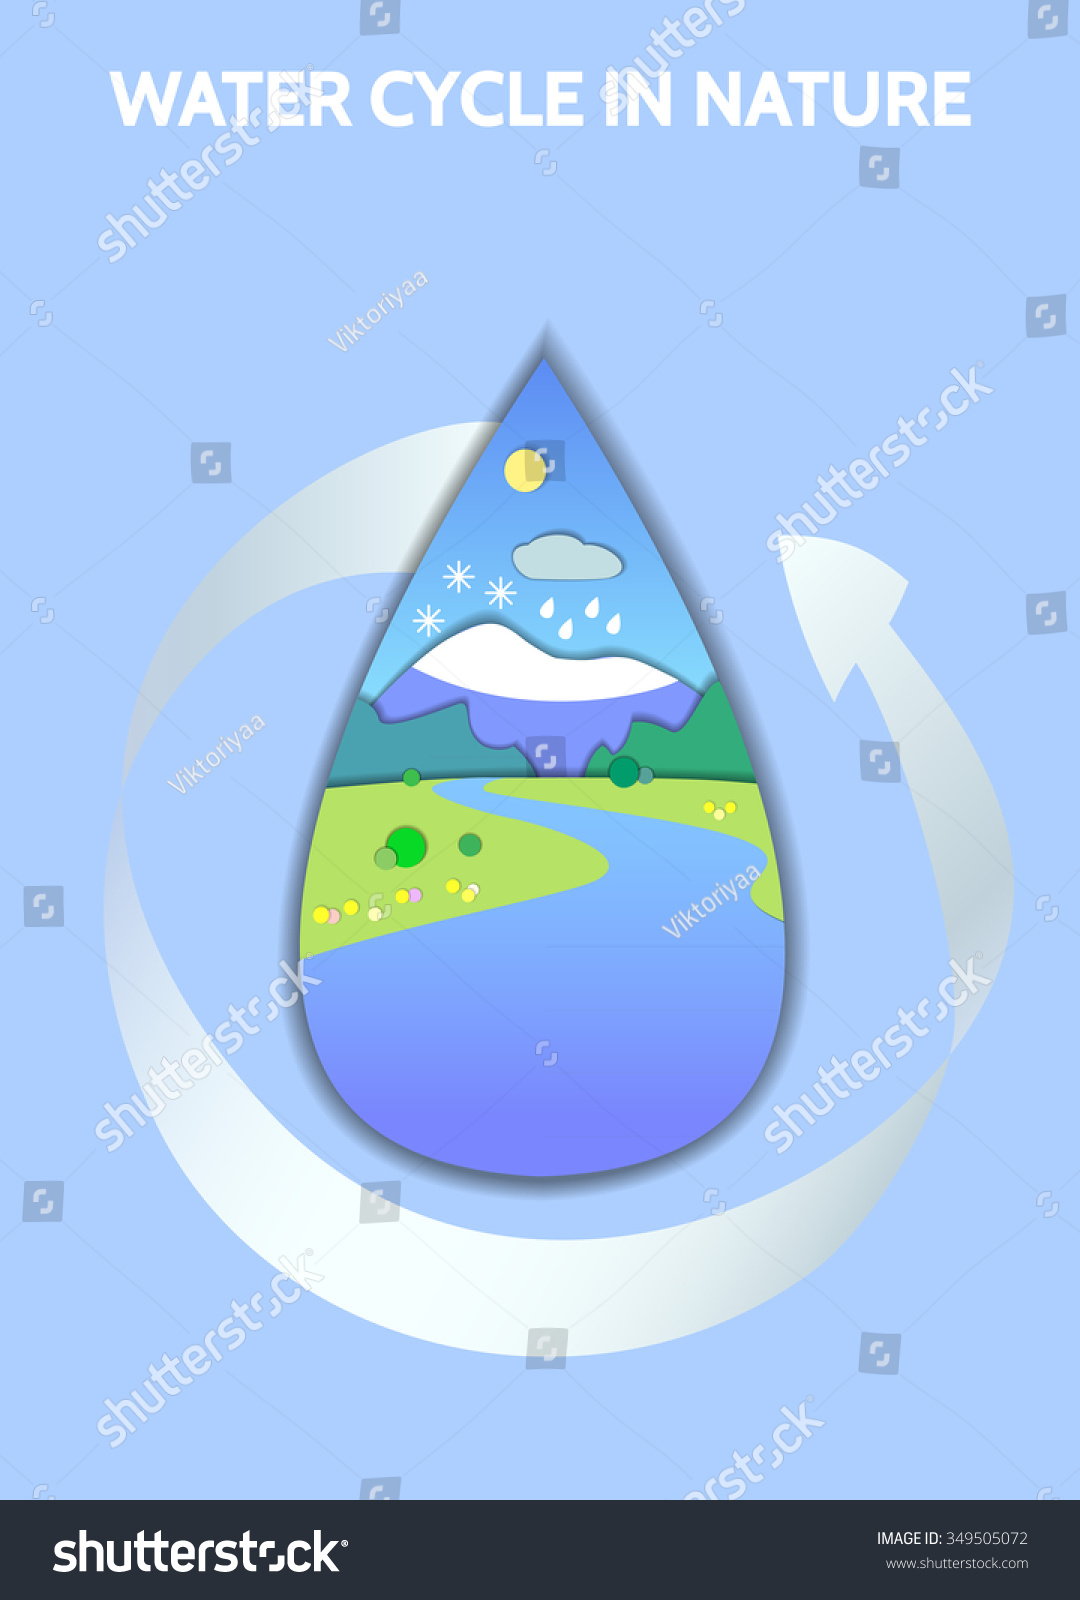 Schematic Representation Global Water Cycle Nature Stock Illustration